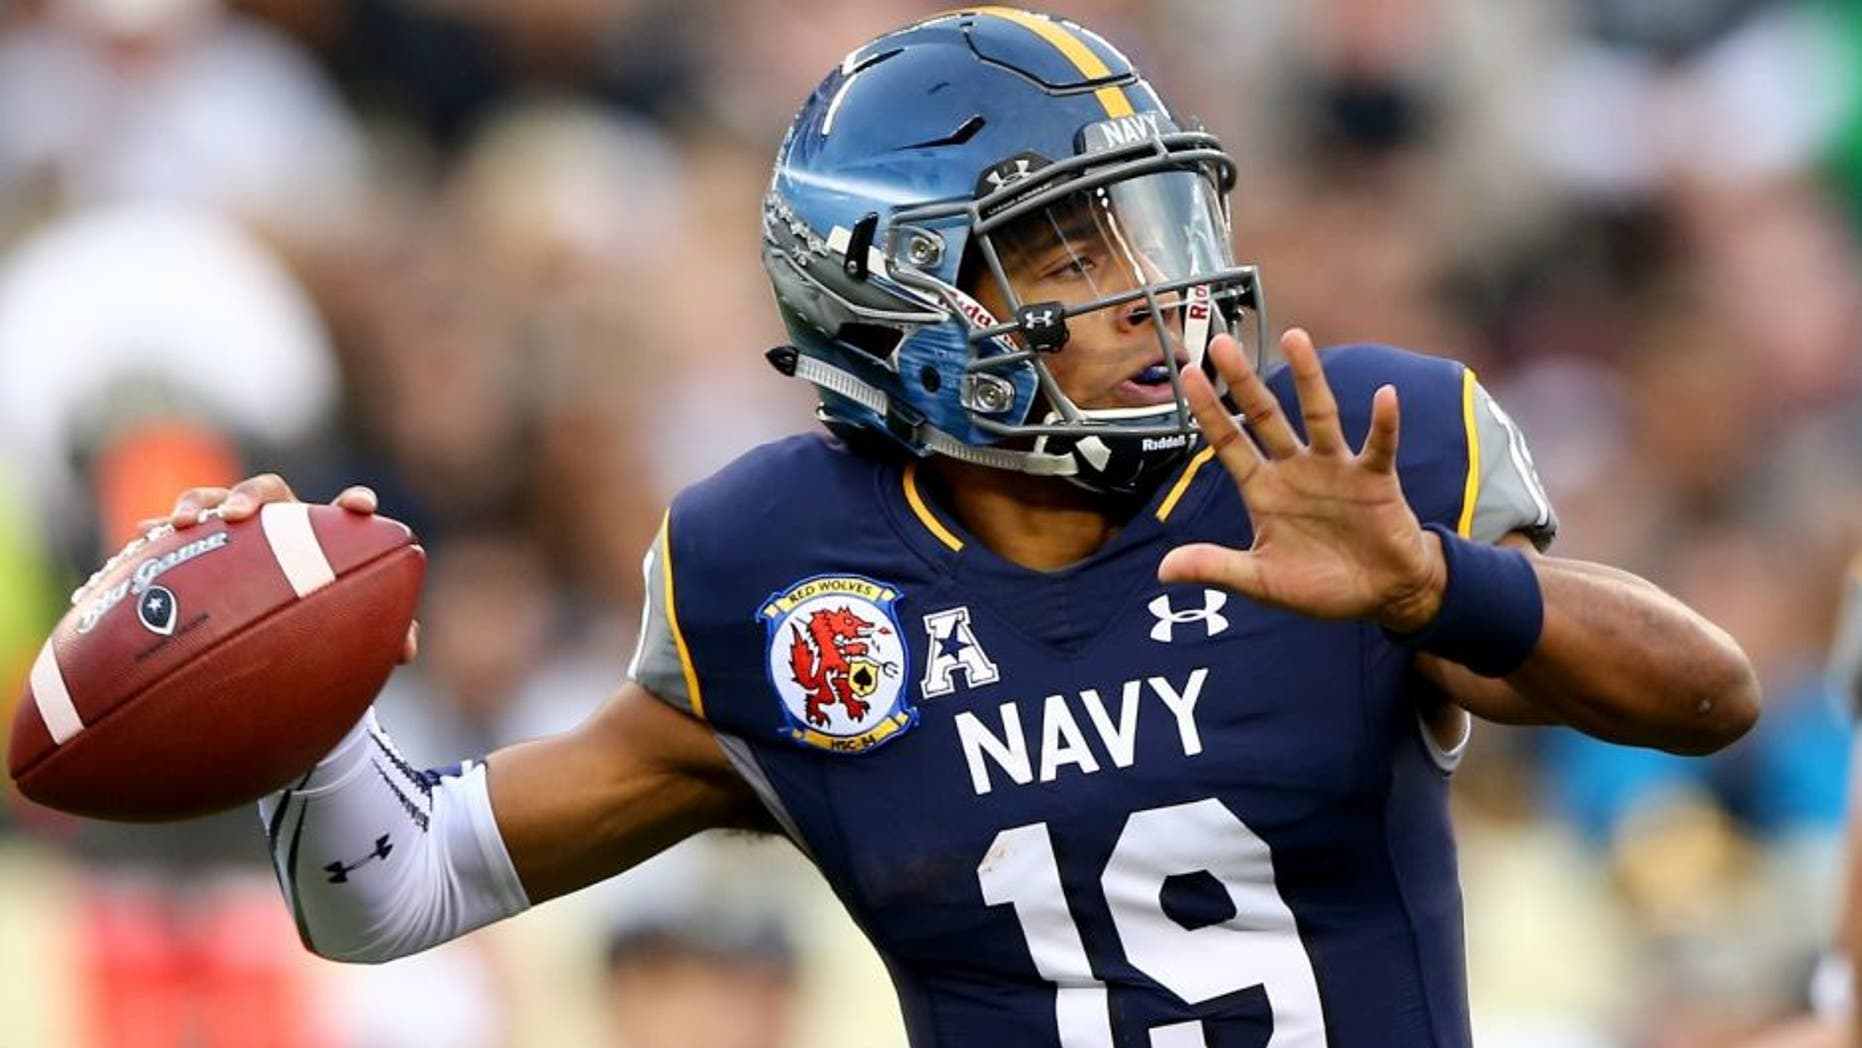 of the Navy Midshipmen of the Army Black Knights at Lincoln Financial Field on December 12, 2015 in Philadelphia, Pennsylvania.,PHILADELPHIA, PA - DECEMBER 12: Keenan Reynolds #19 of the Navy Midshipmen passes the ball in the first quarter against the Army Black Knights at Lincoln Financial Field on December 12, 2015 in Philadelphia, Pennsylvania. (Photo by Elsa/Getty Images)